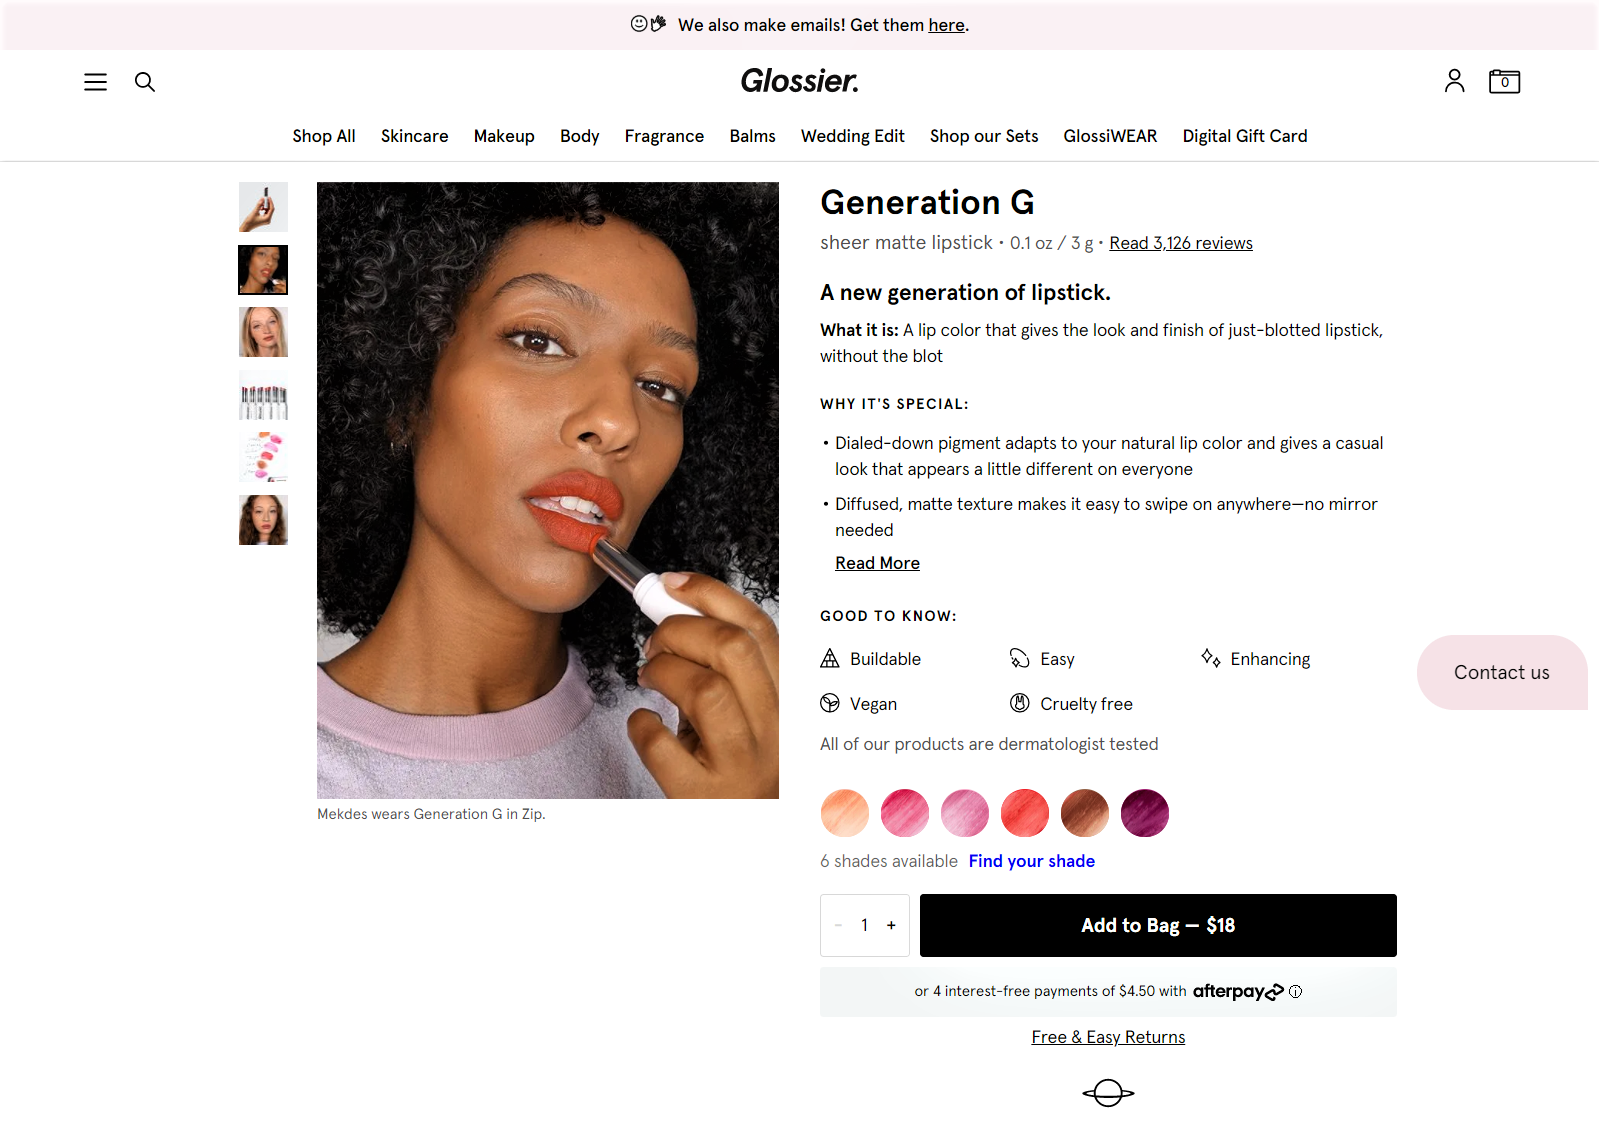 Example of the Glossier product page design